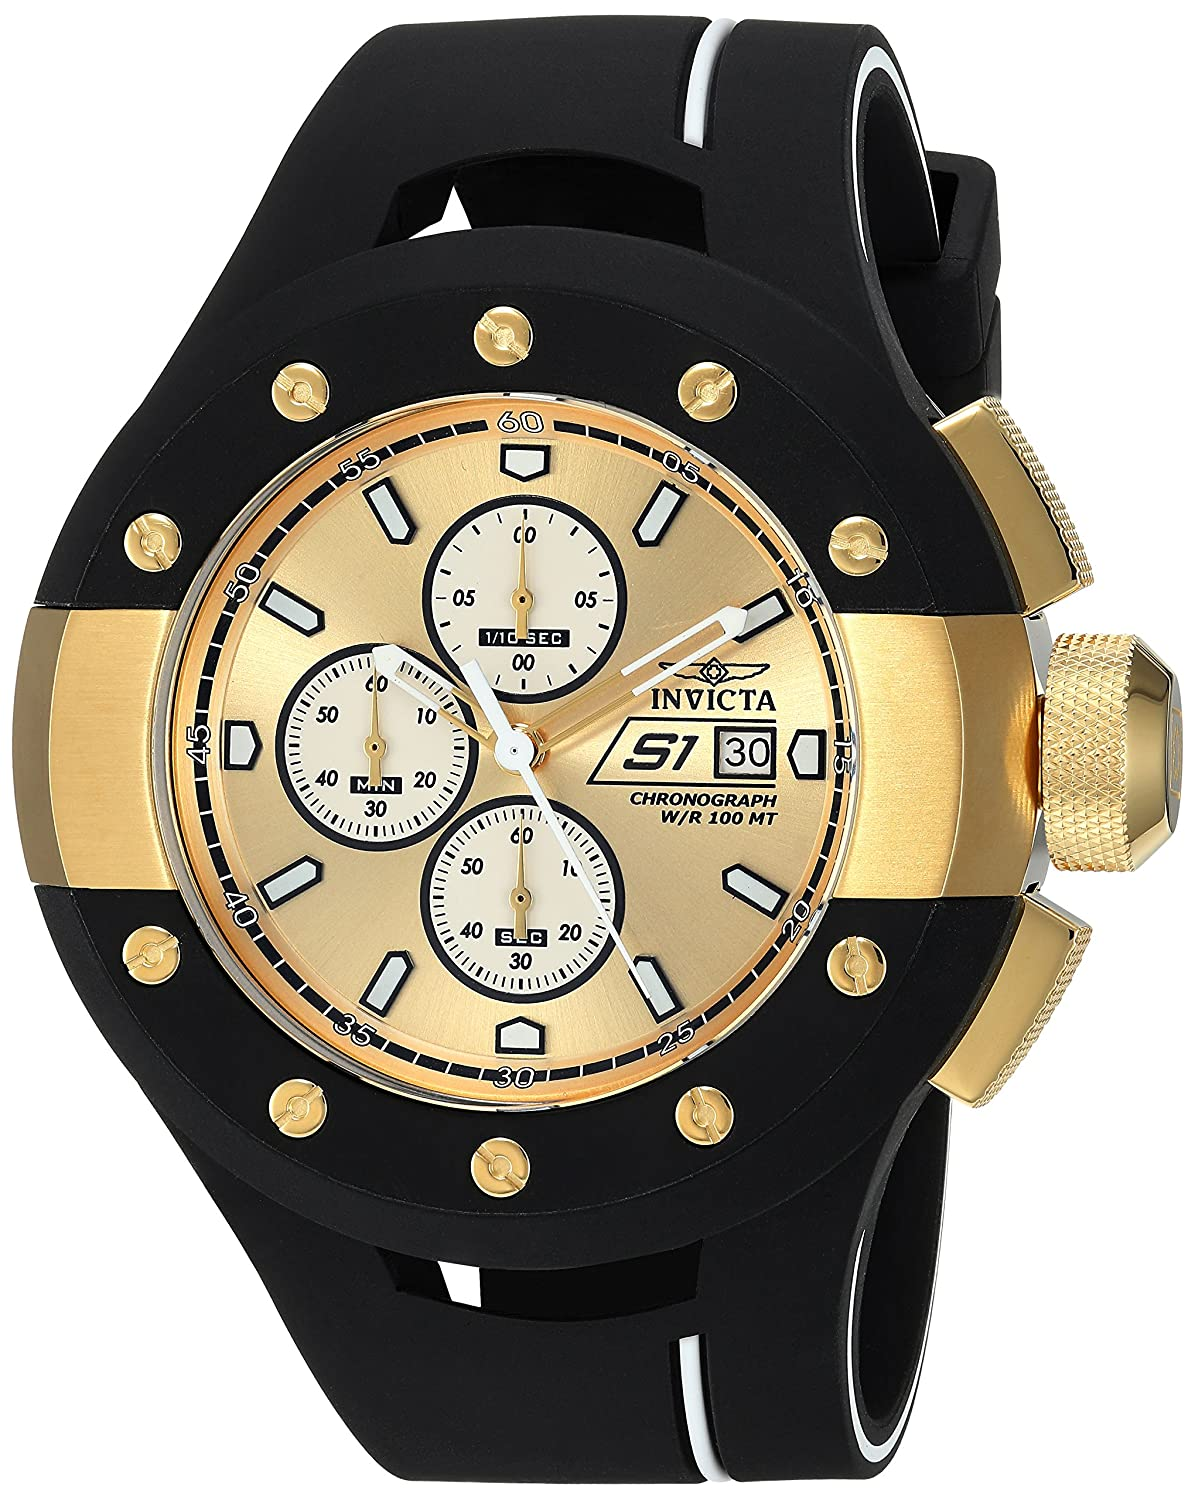 Invicta Men s S1 Rally Stainless Steel Quartz Watch with Silicone Strap, Black, 31 Model 22437